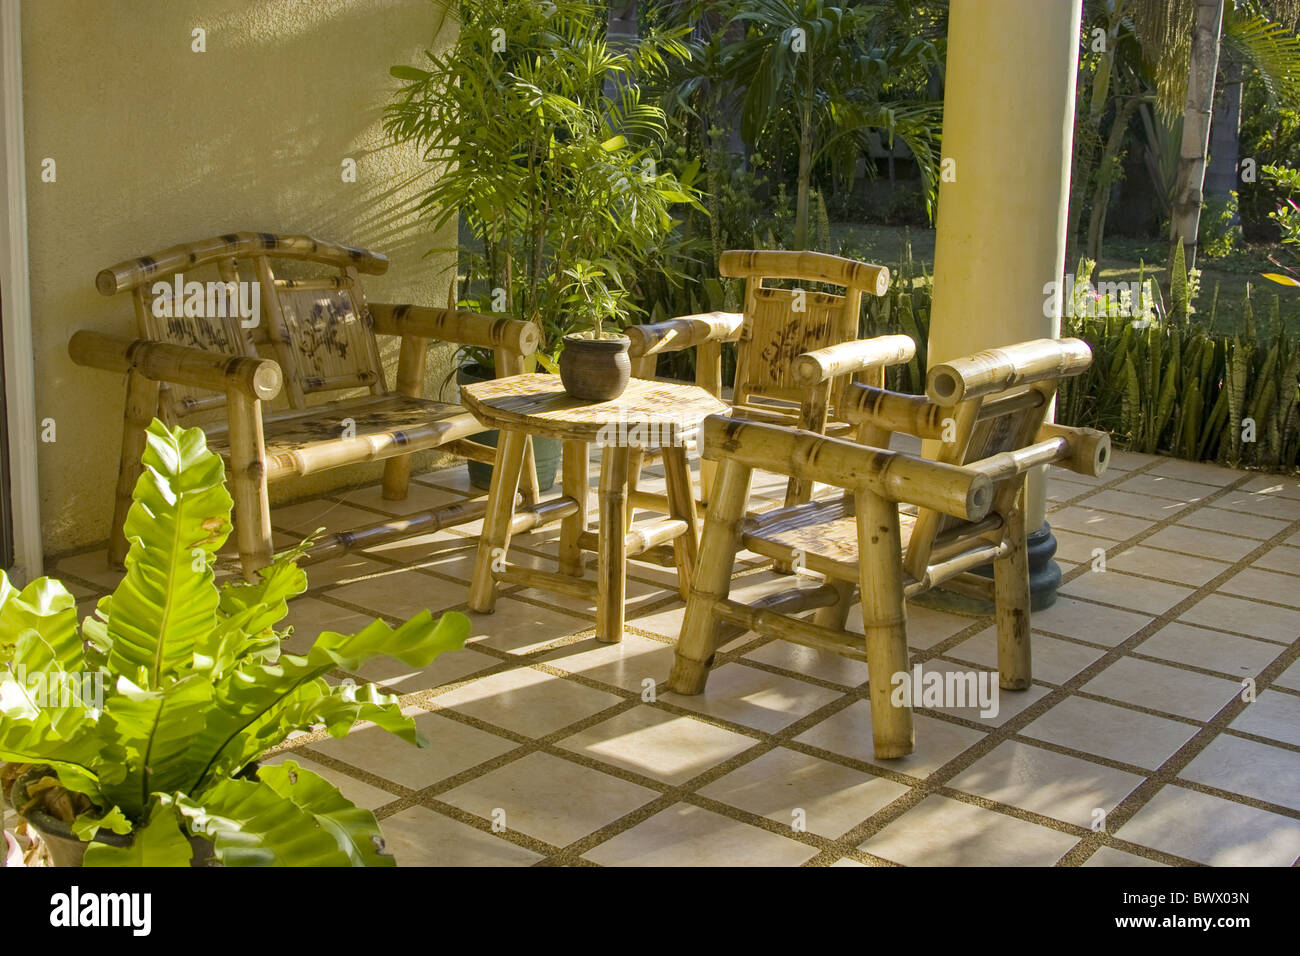 Garden Furniture Chairs Table Made From Bamboo